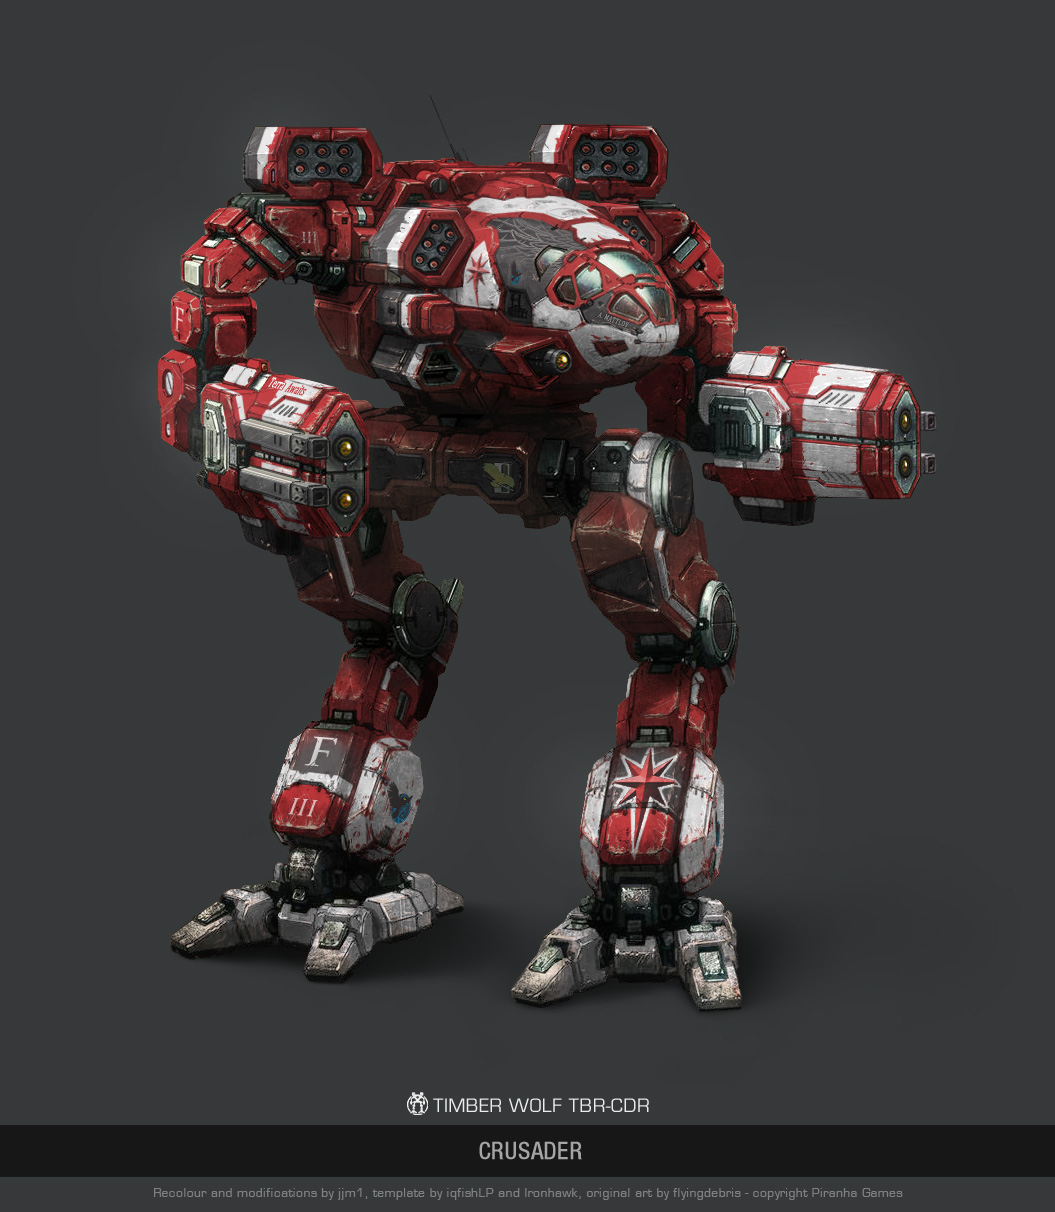 mwo timber wolf crusader by user000000000001 on deviantart